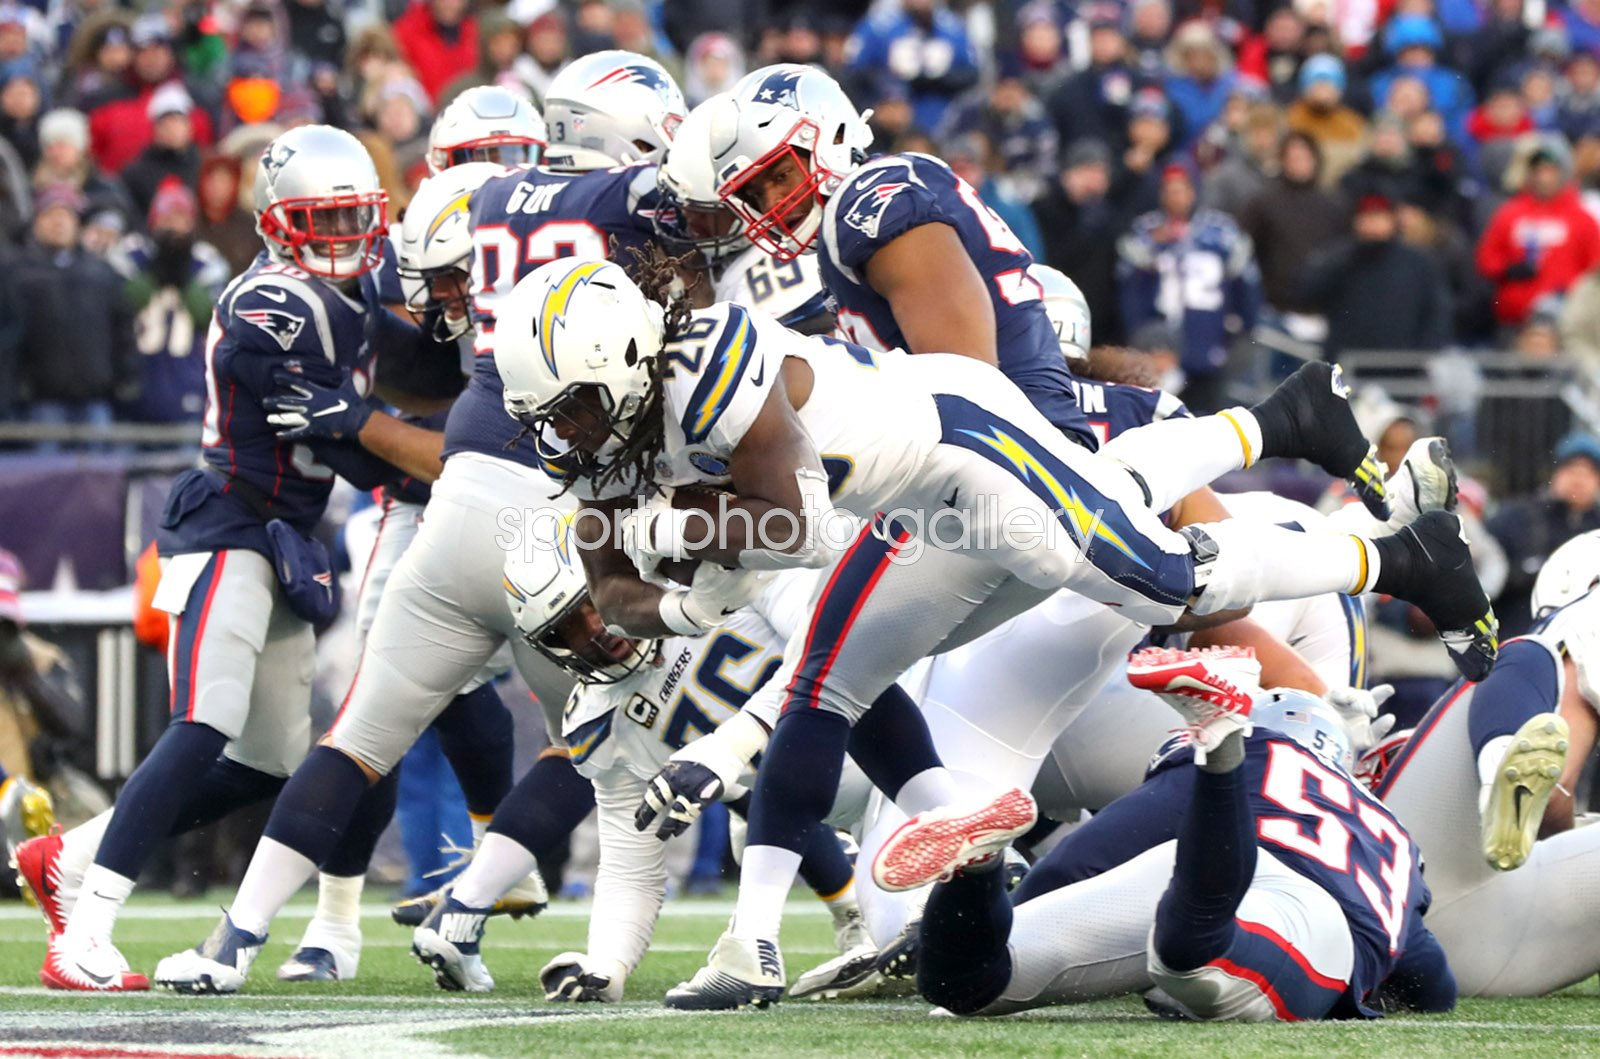 Melvin Gordon Los Angeles Chargers Touchdown v Patriots 2019